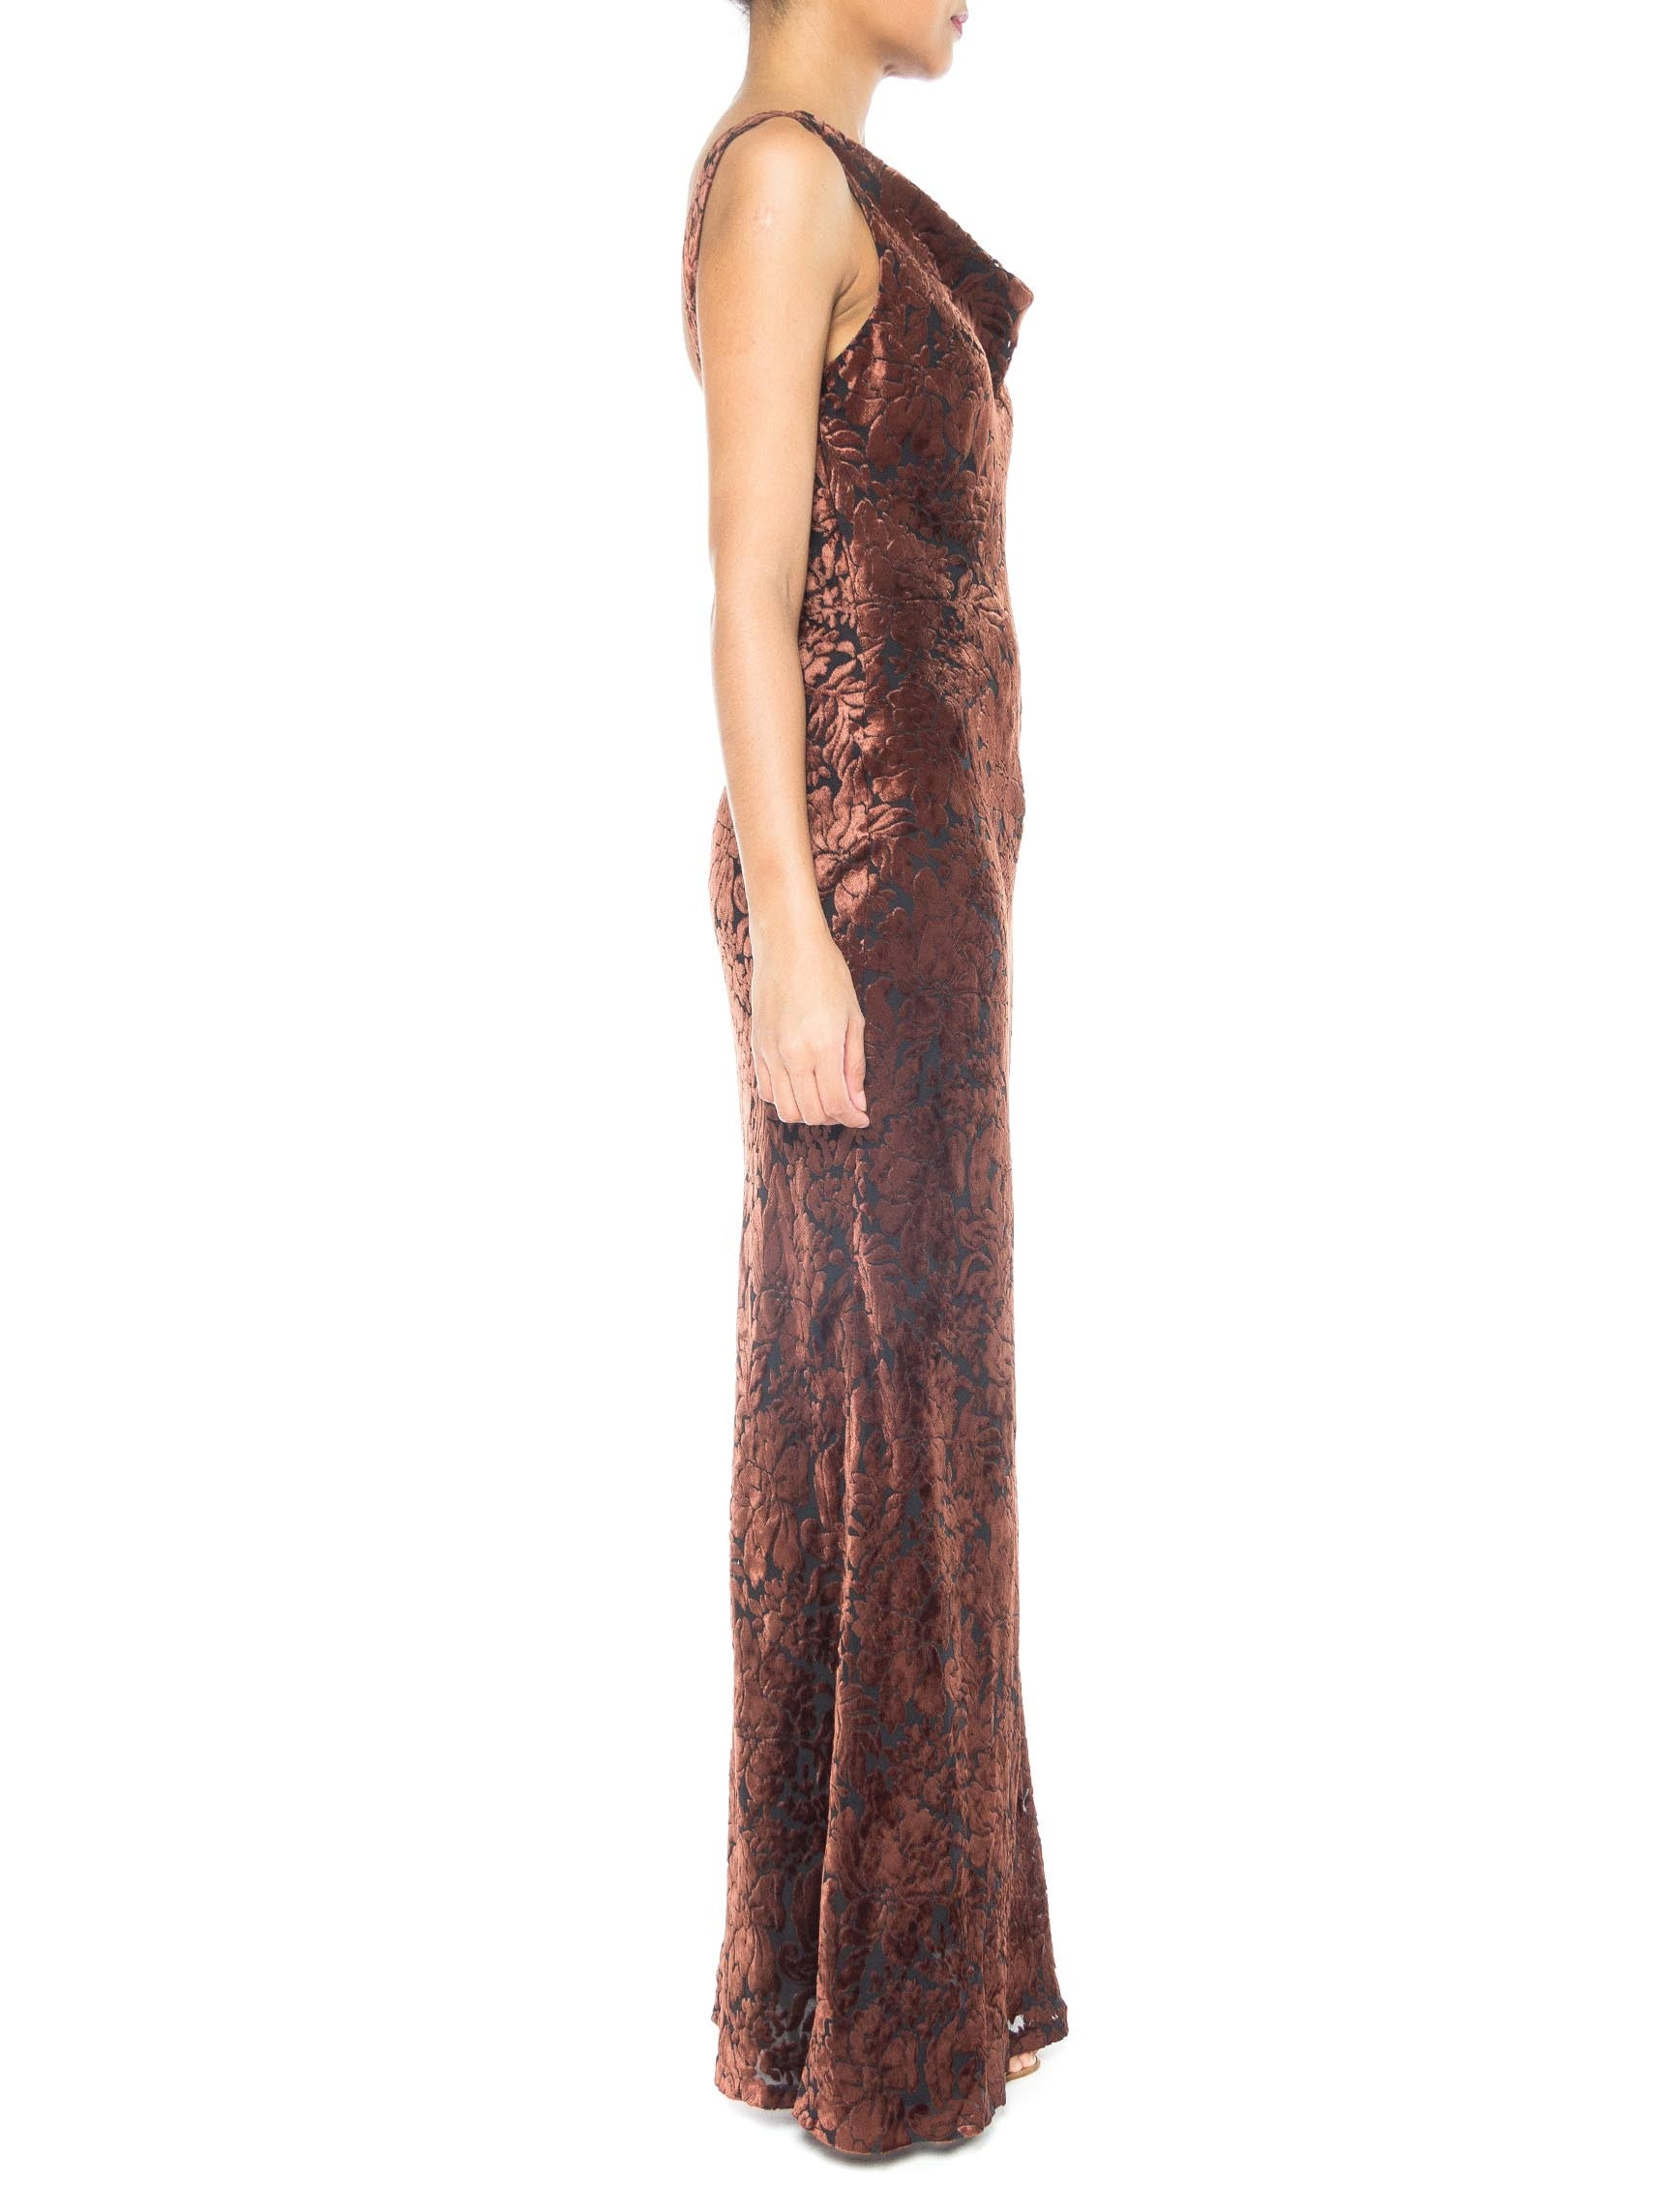 1990S CARMEN MARC VALVO Chocolate Brown & Black Rayon Silk Burnout Velvet Backless Bias Gown